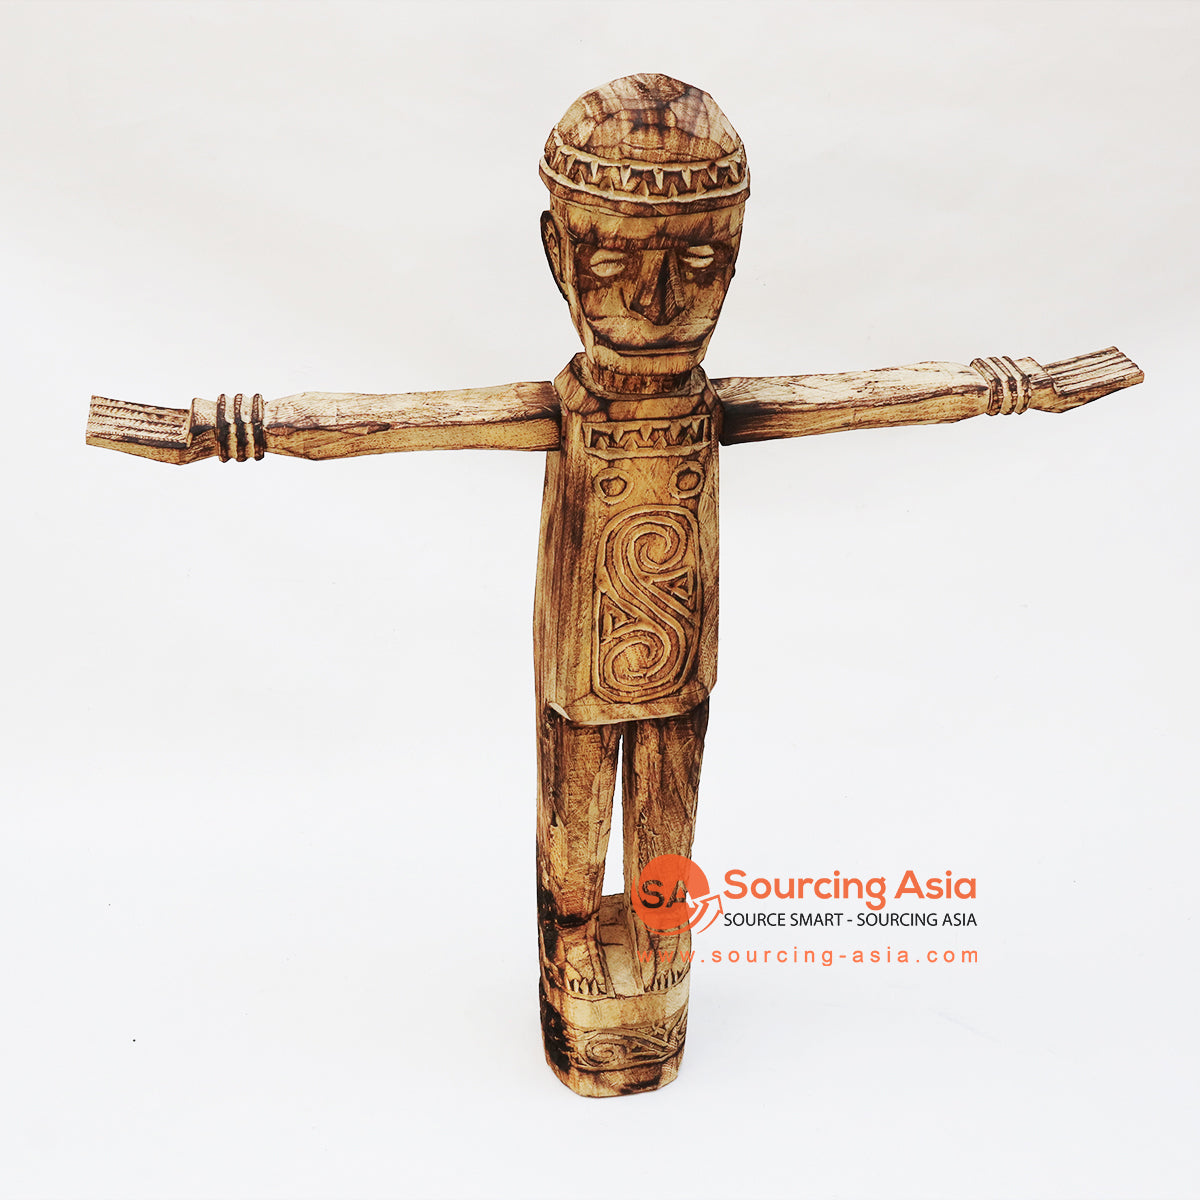 EXAC015-1 SUMBA PEOPLE WOODEN STATUE